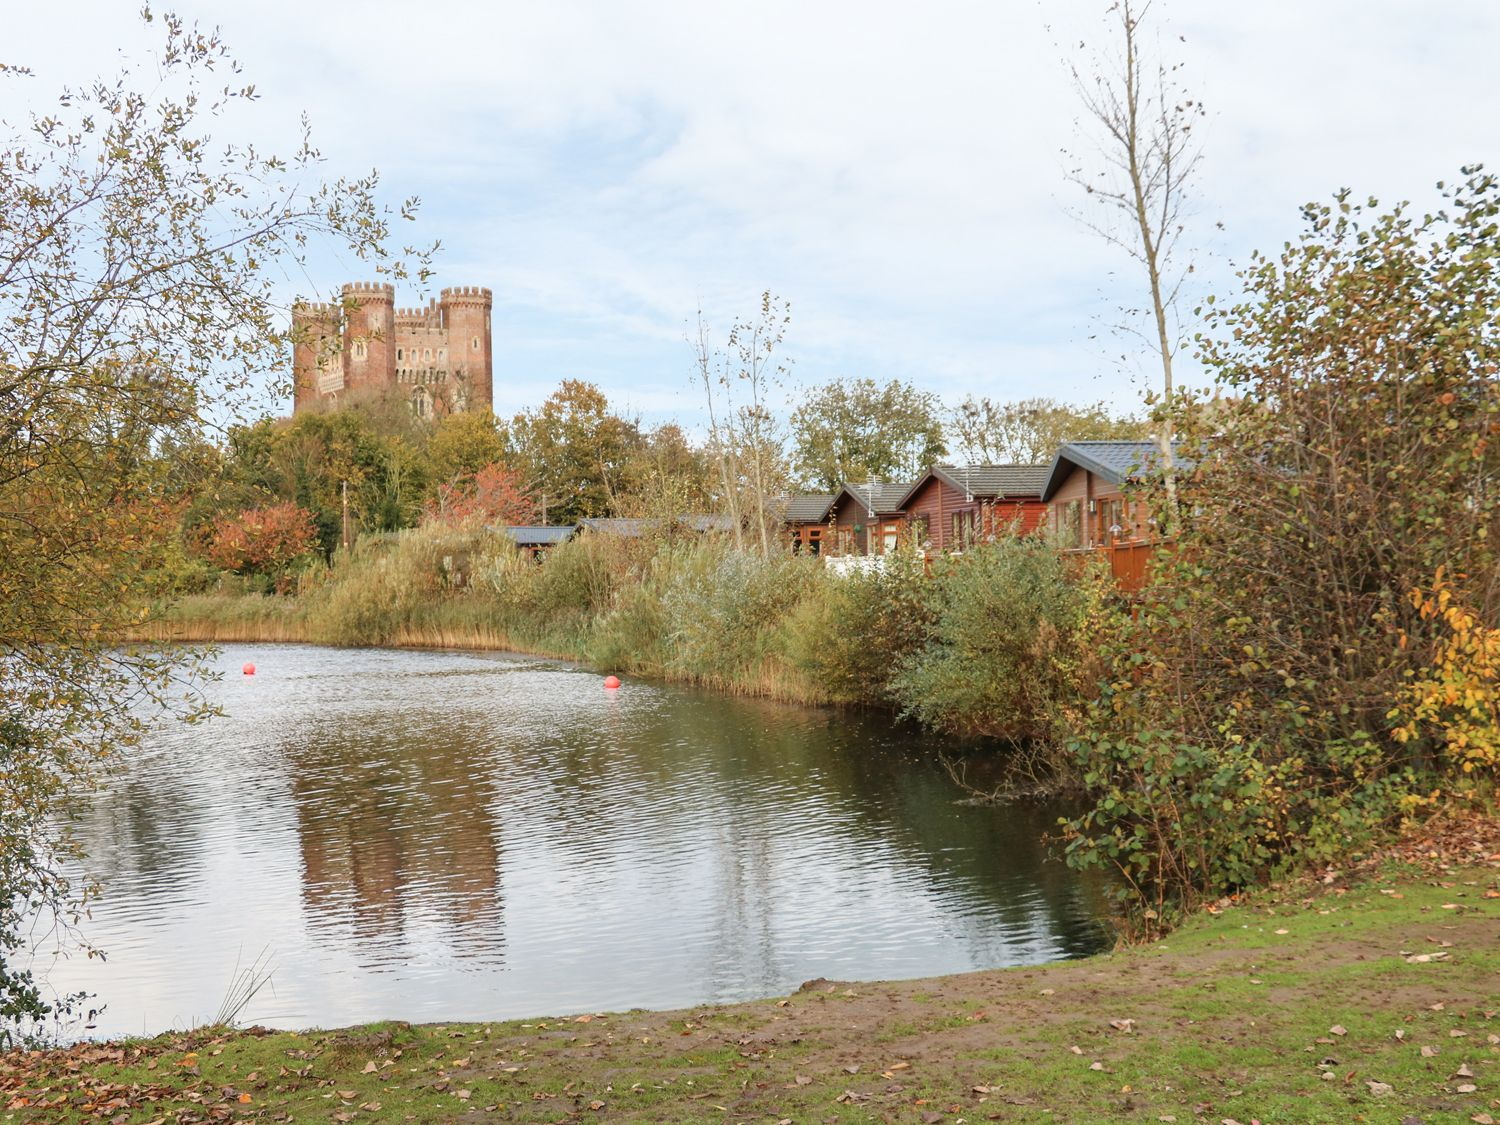 4 castle view tattershall lakes country park tattershall east anglia self catering for Tattershall lakes swimming pool